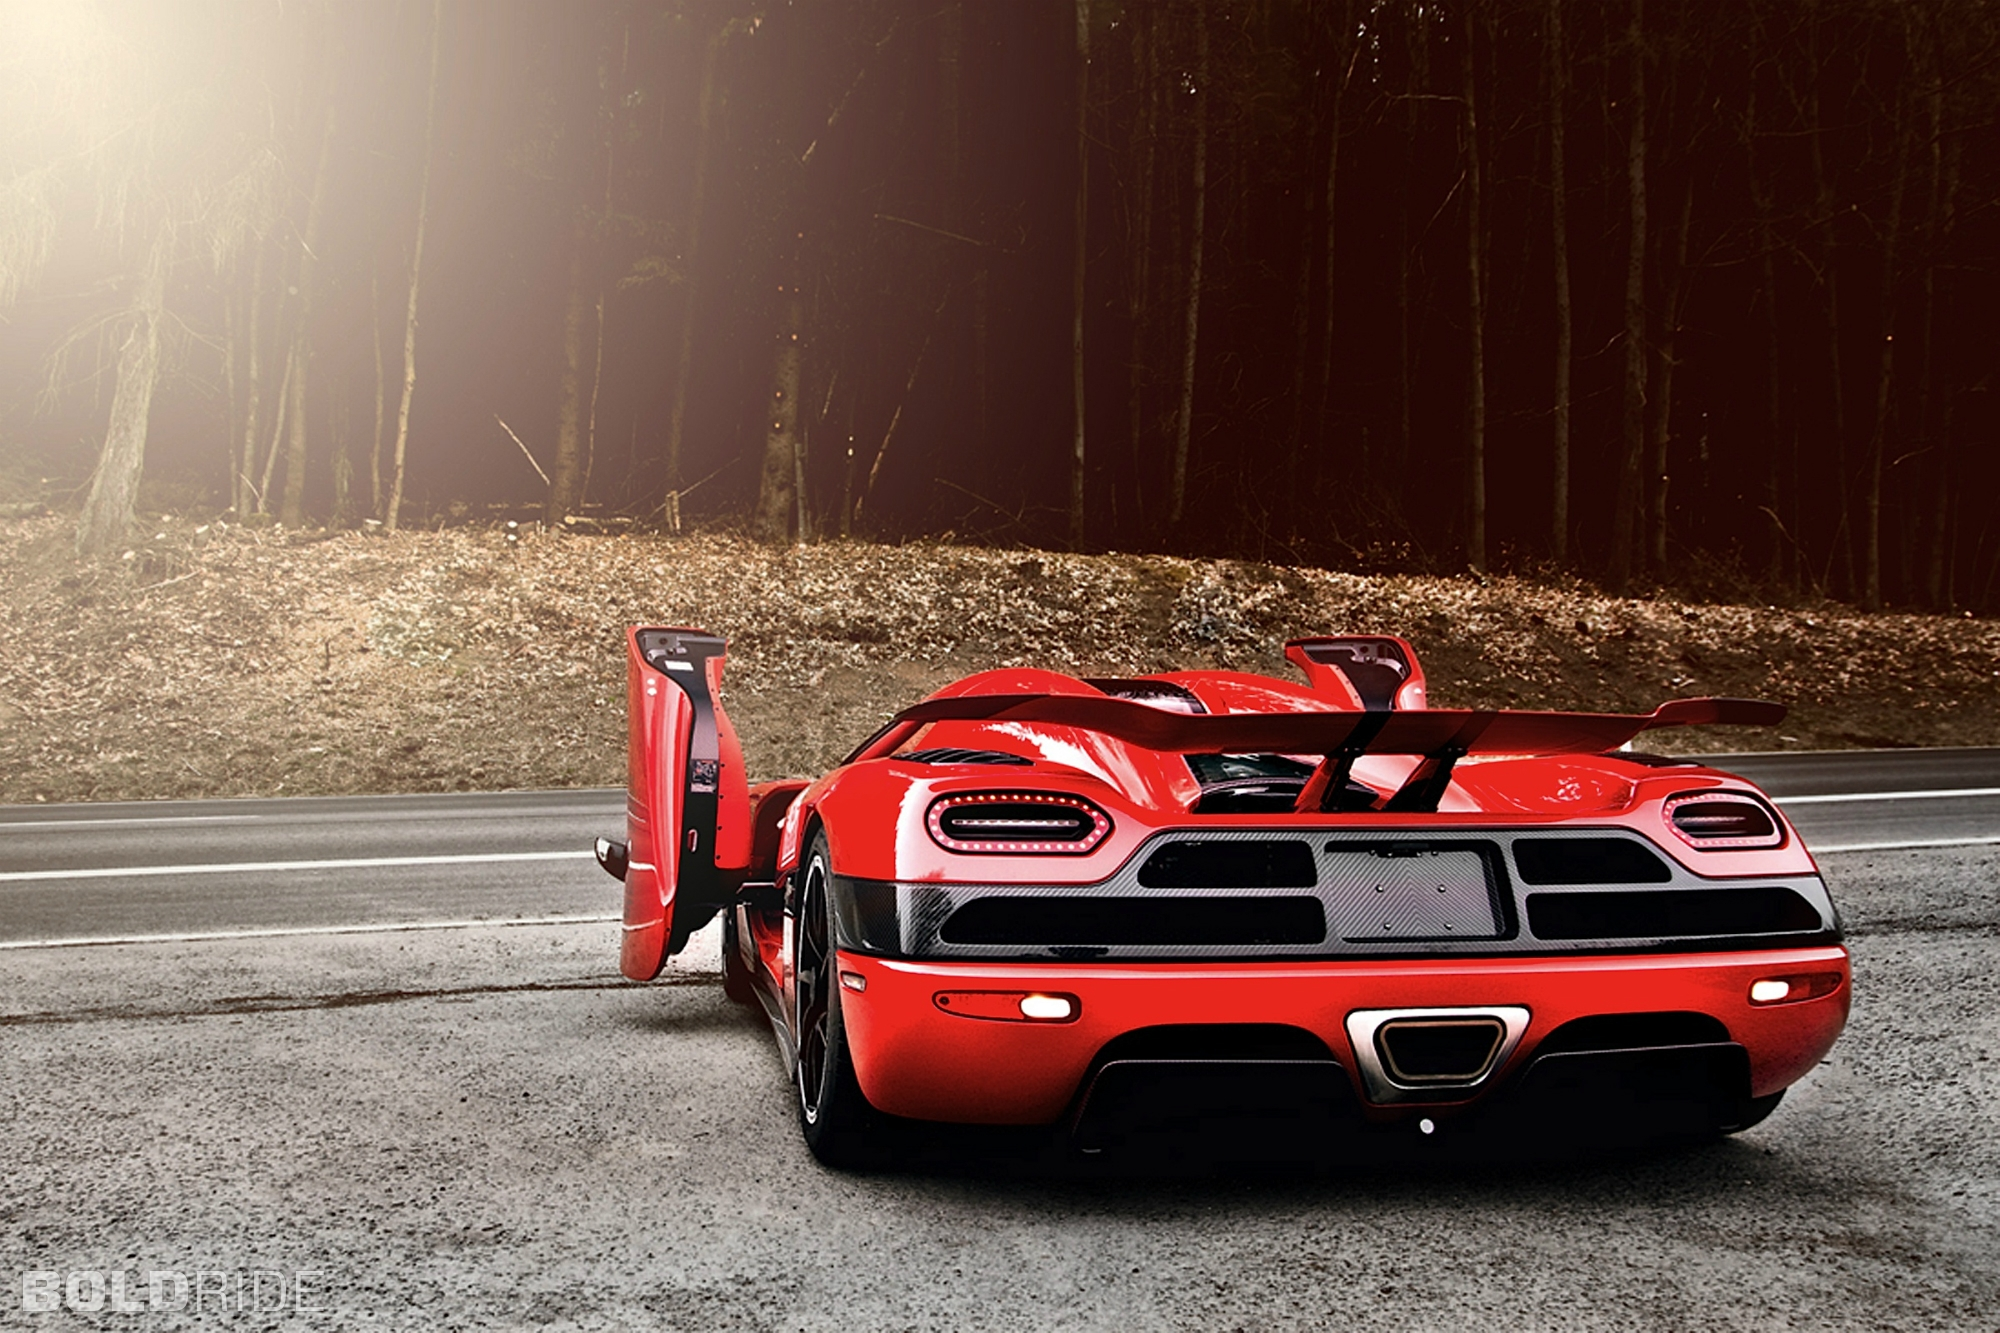 Koenigsegg Agera R Iphone Wallpaper Wallpapersafari